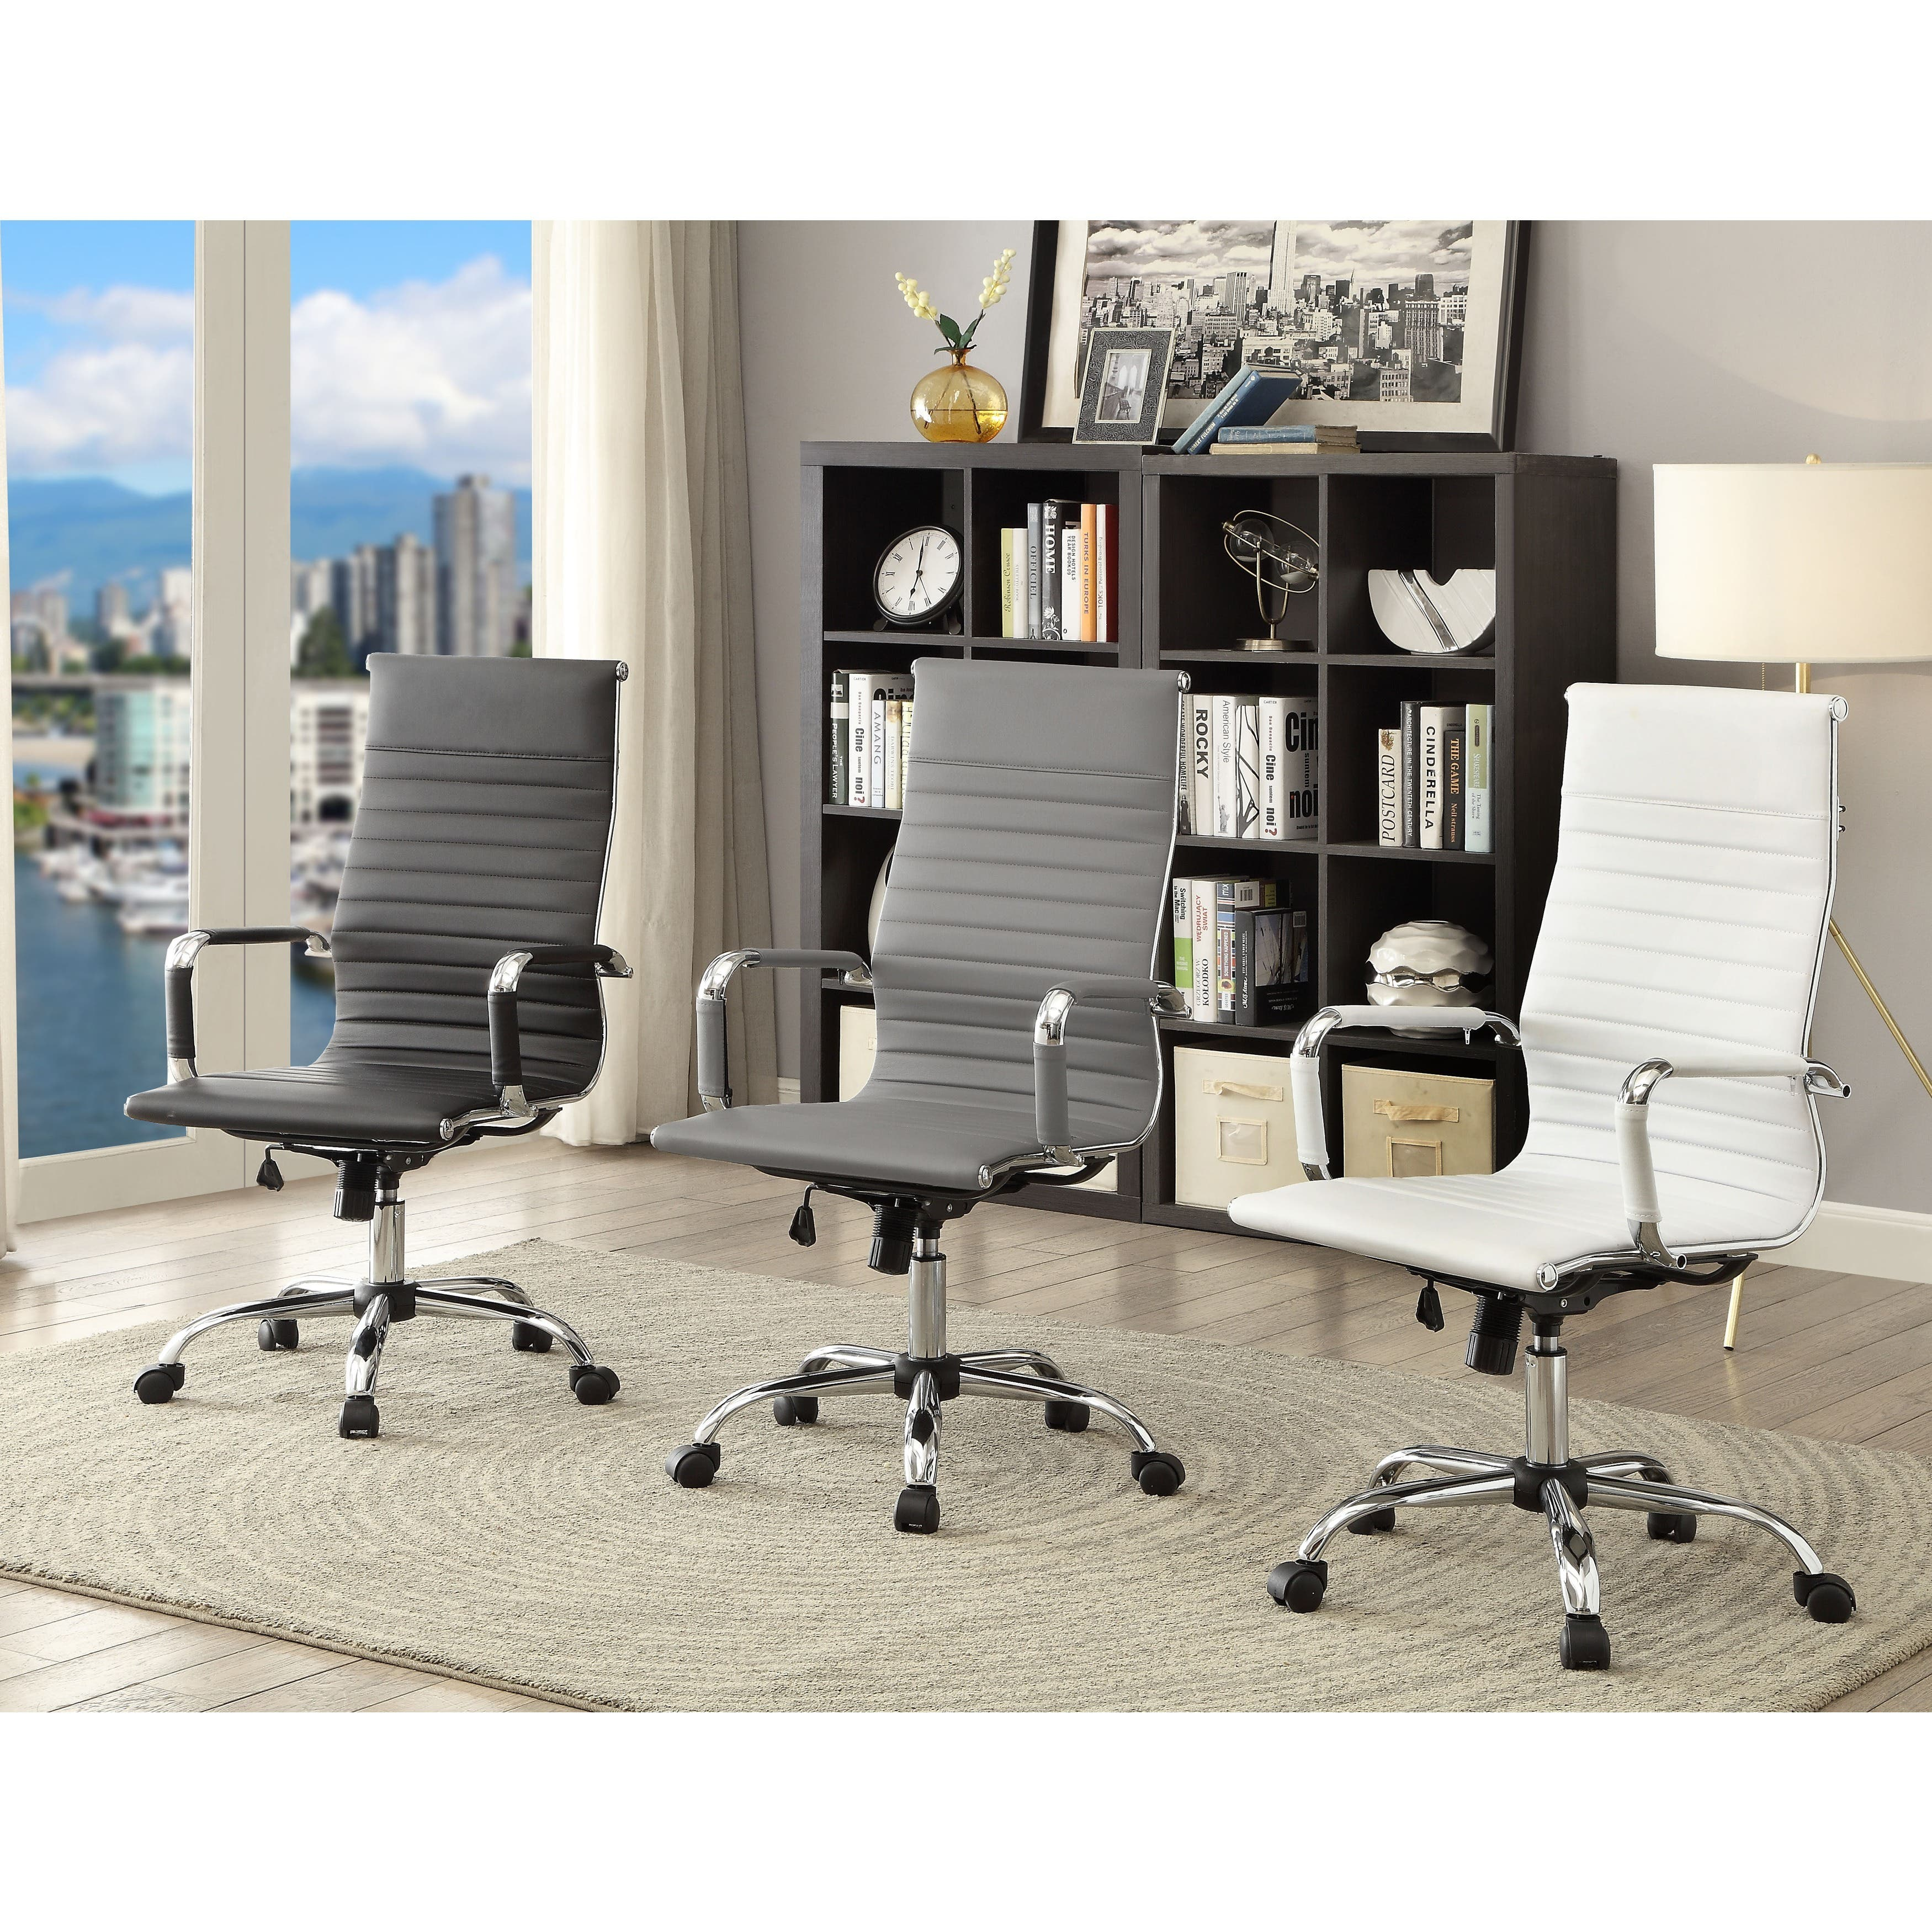 Furniture of America Kimmel Ribbed High Back Office Chair